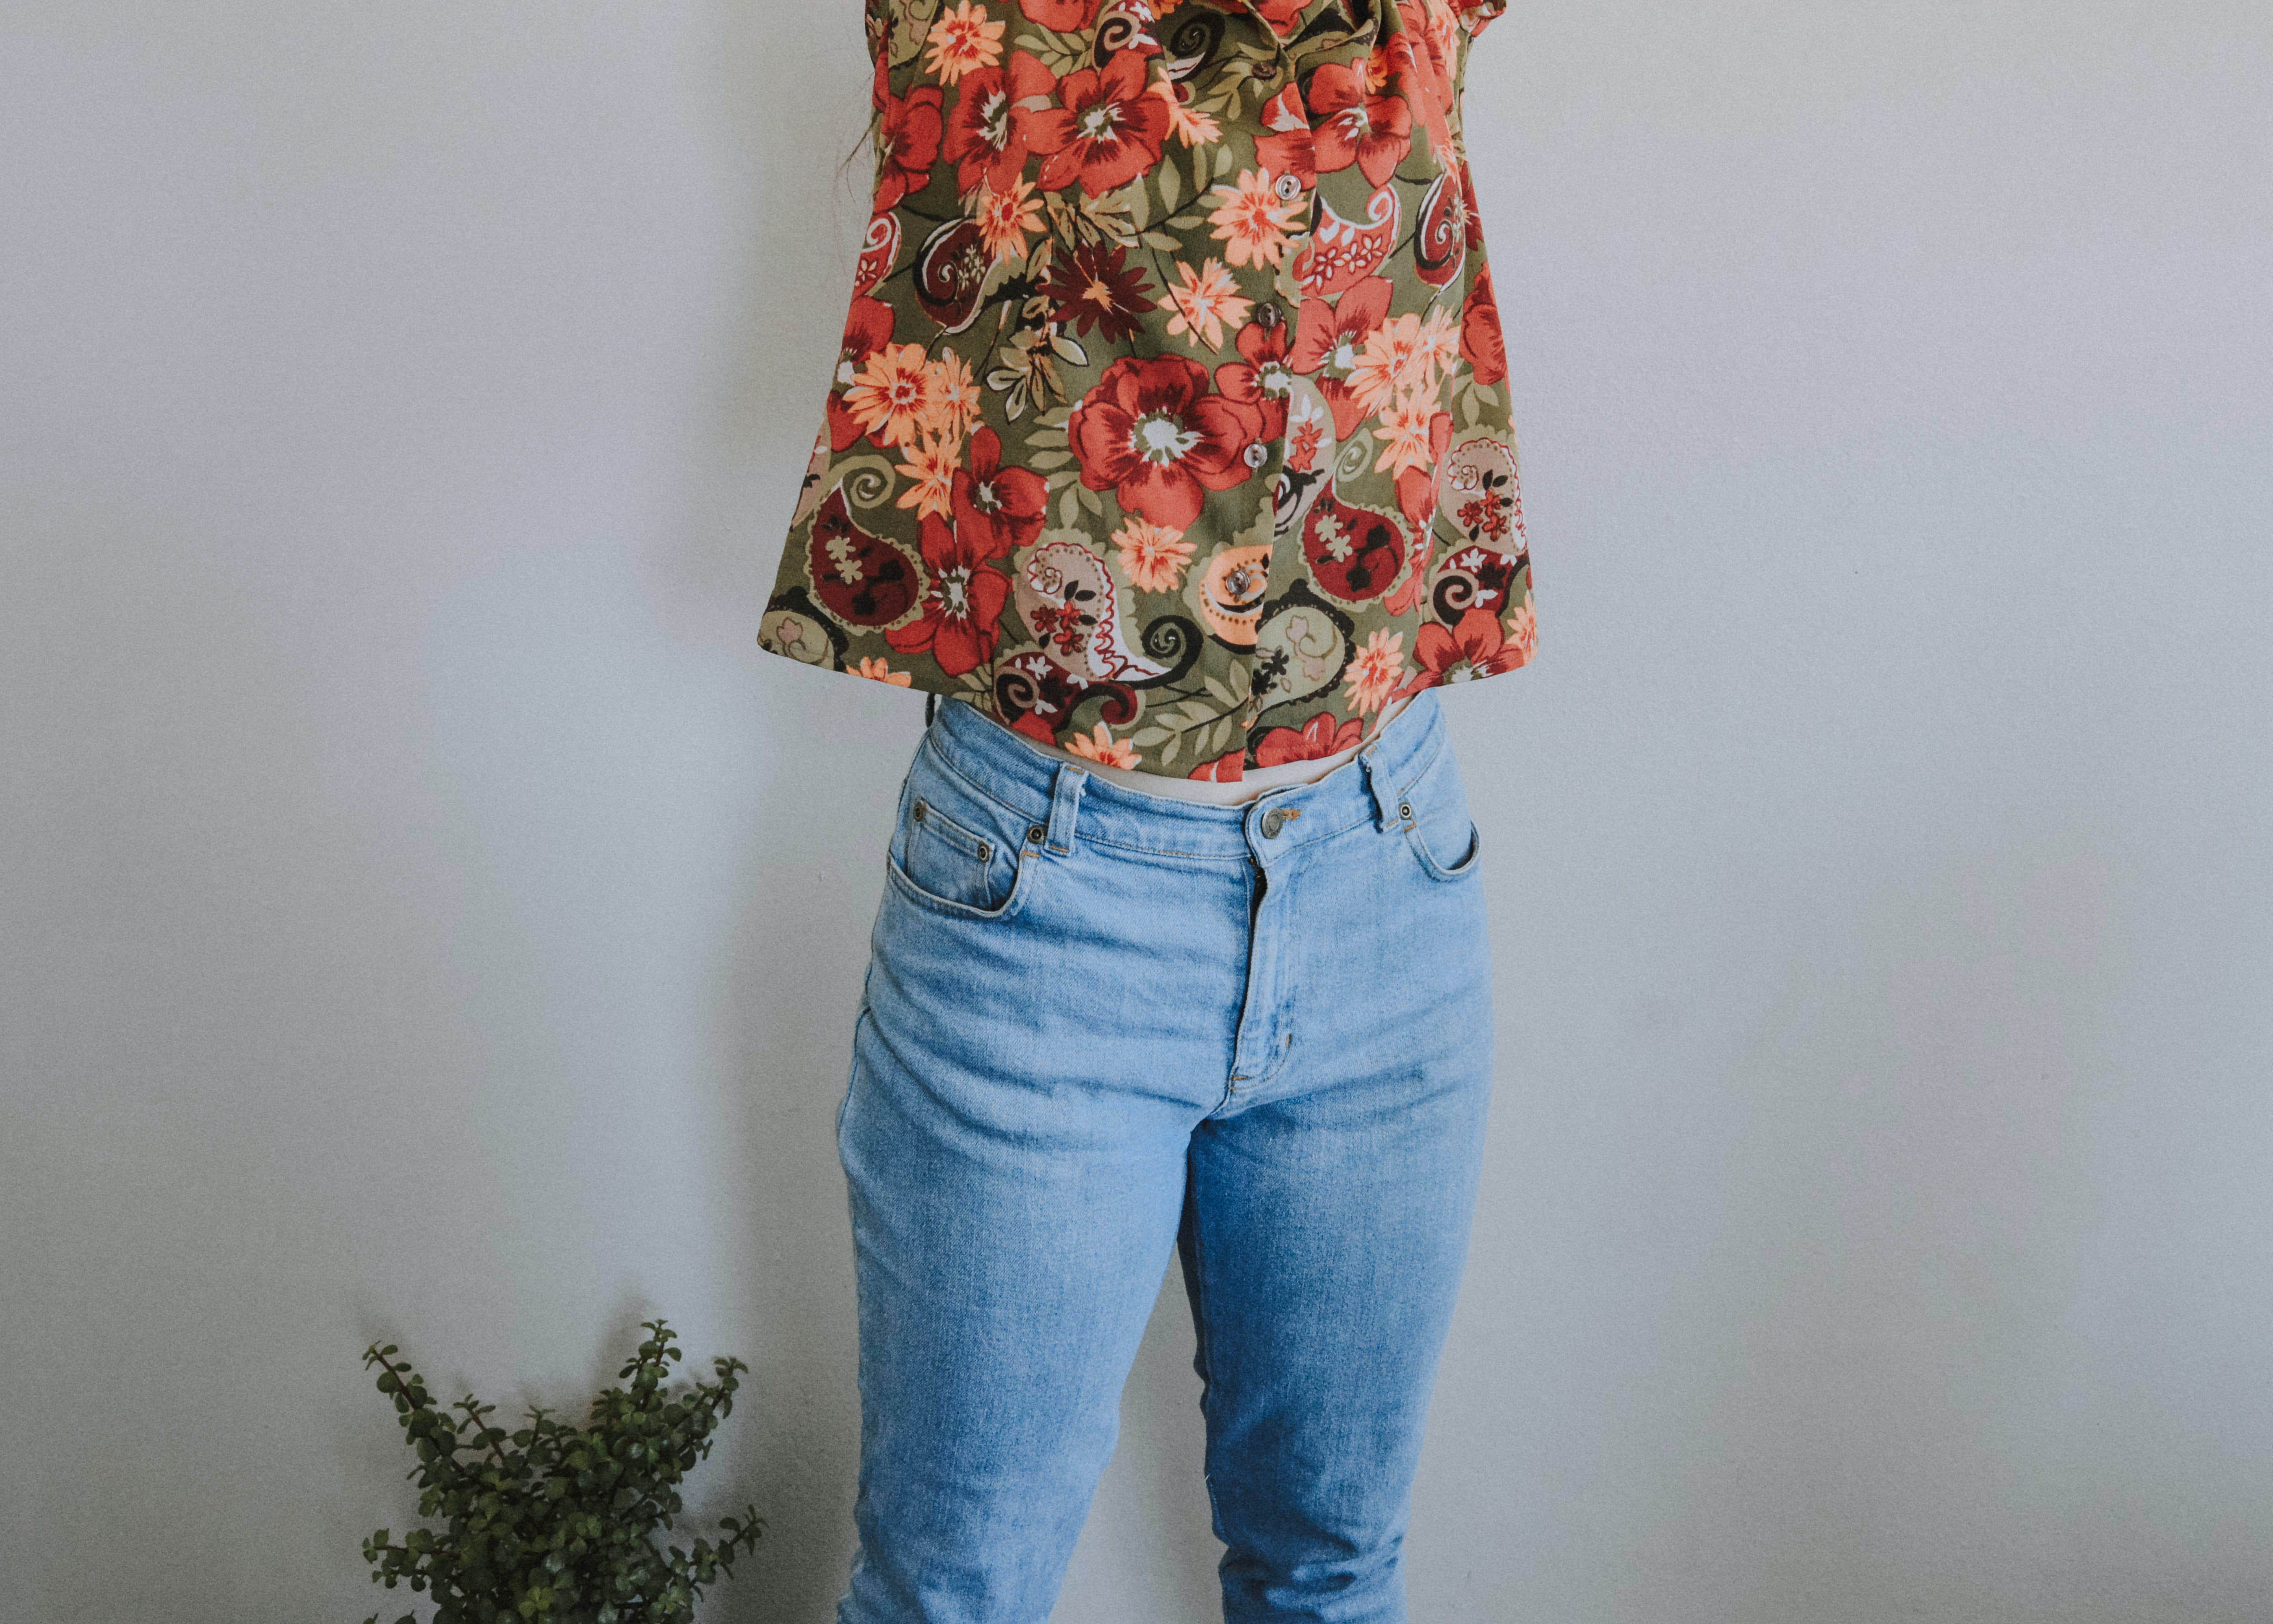 Free stock photo of adolescent, clothes, colors, cute